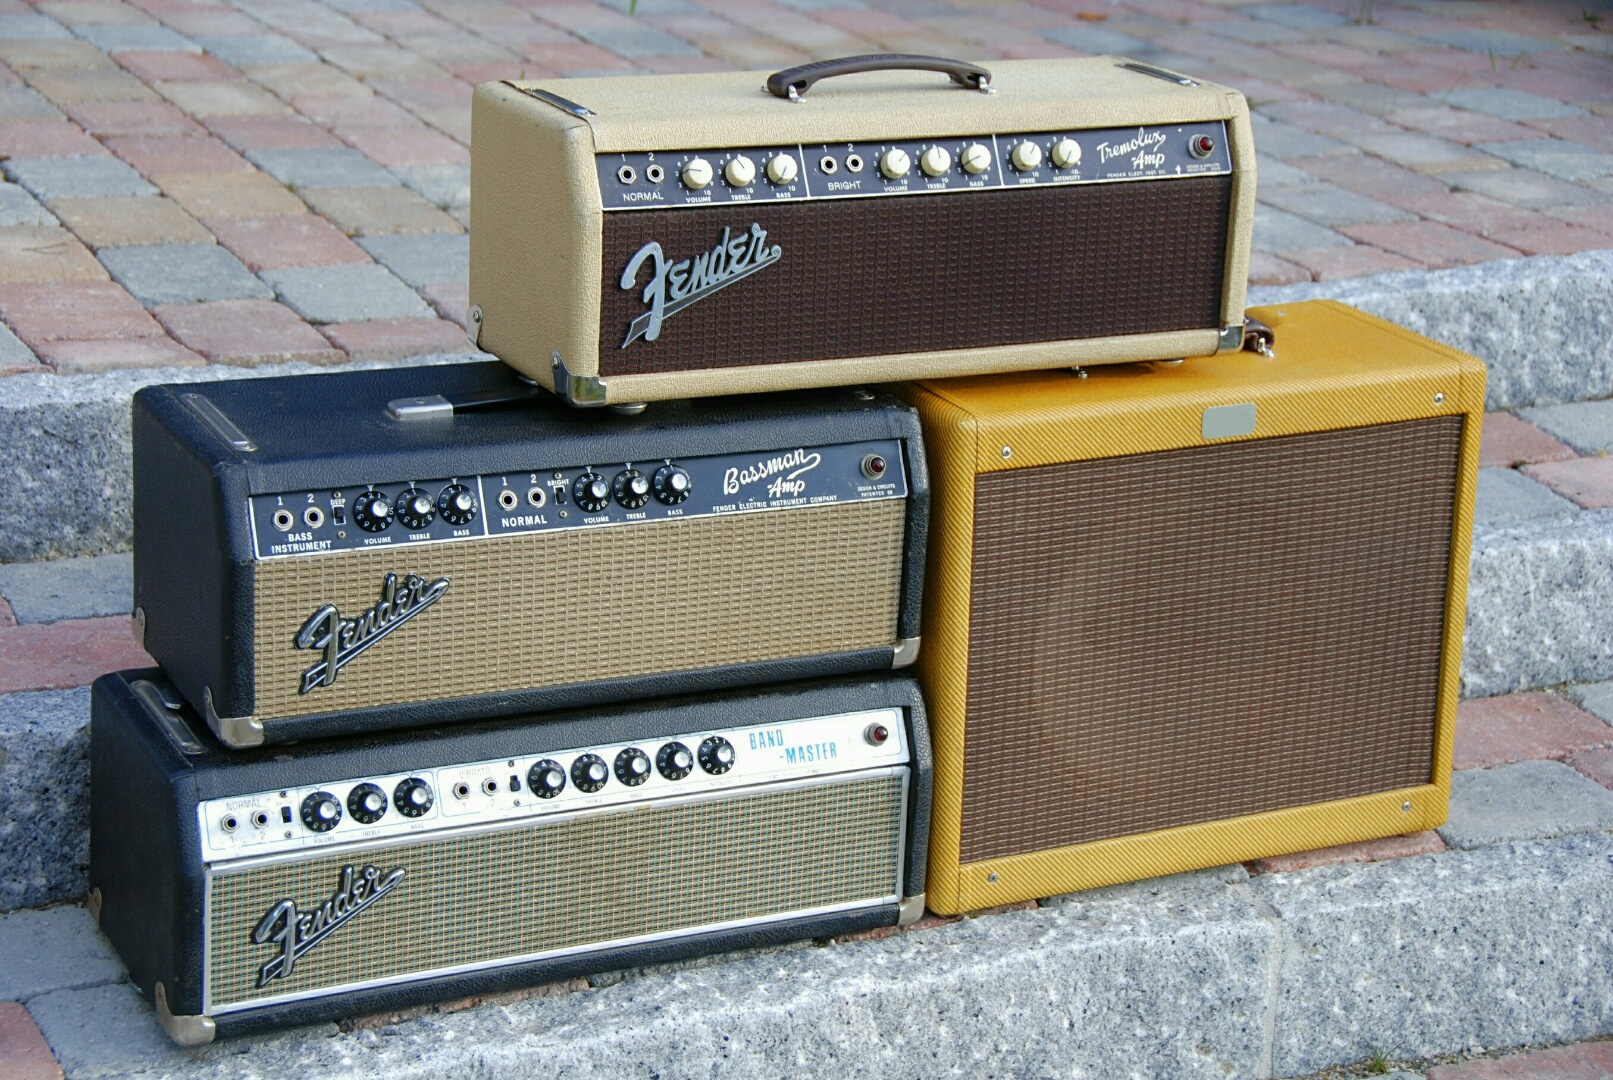 Srv tone fender amp dating